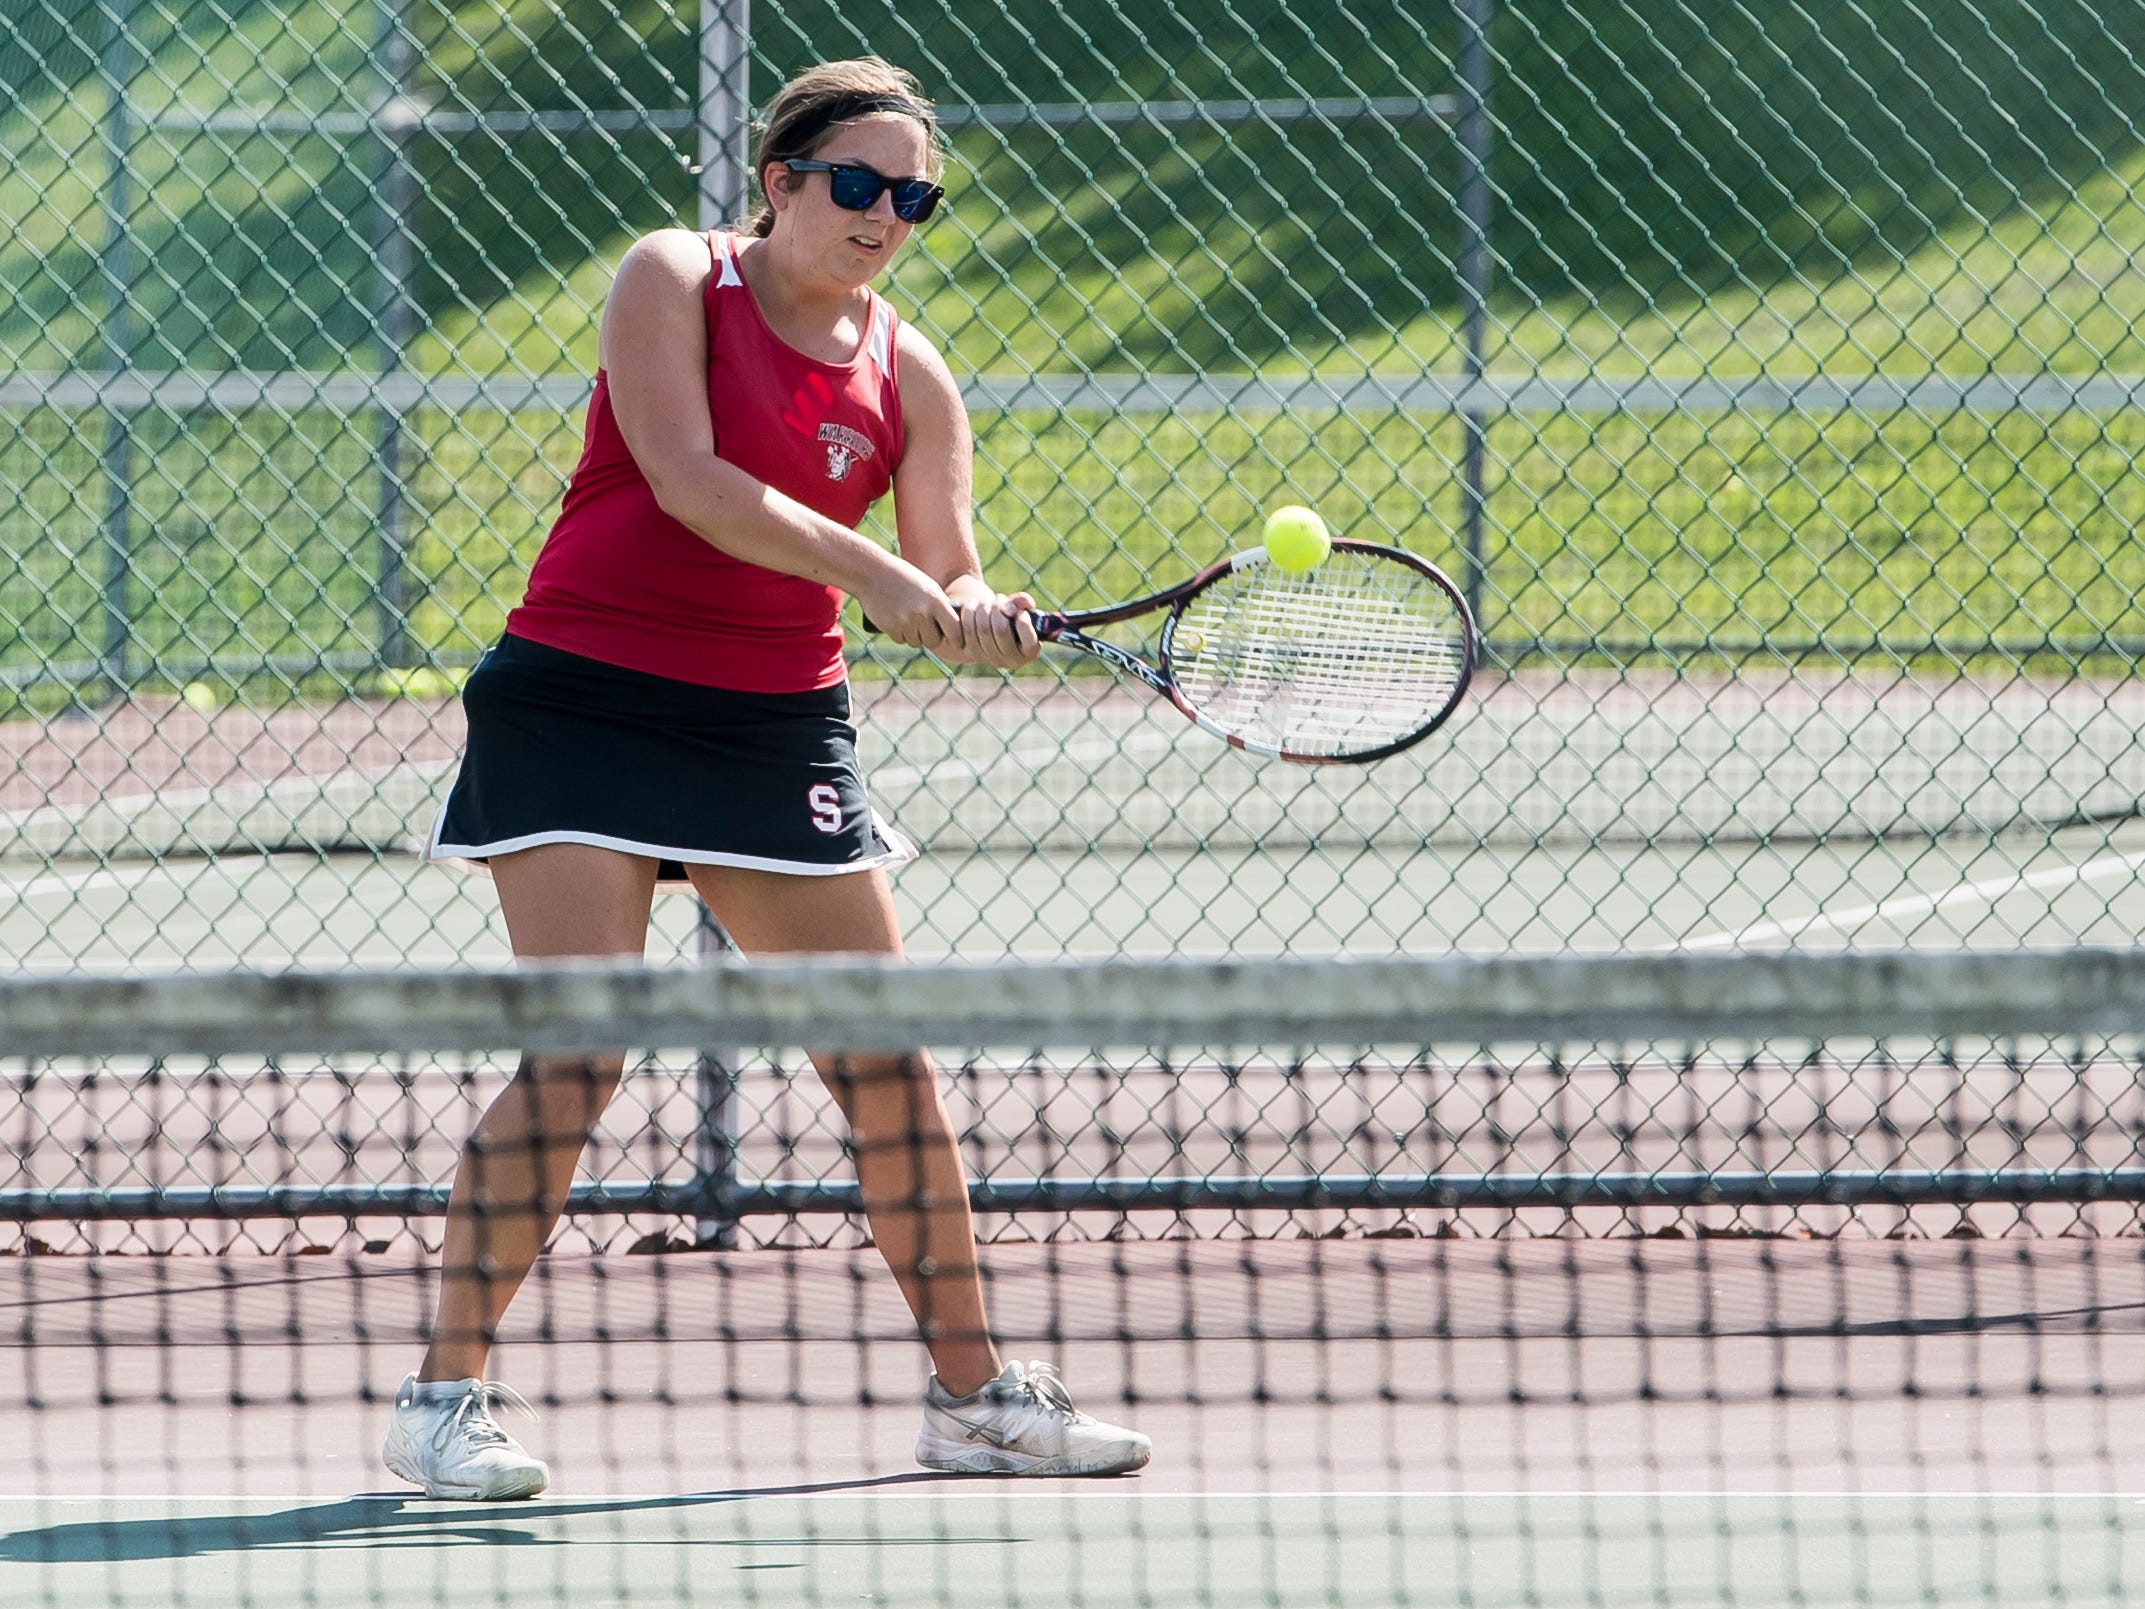 Susquehannock's Kate Cramer returns the ball to Central York's Audrey Stewart during the first round of the YAIAA 3A singles tournament on October 4, 2018. Stewart won 6-4, 6-1.